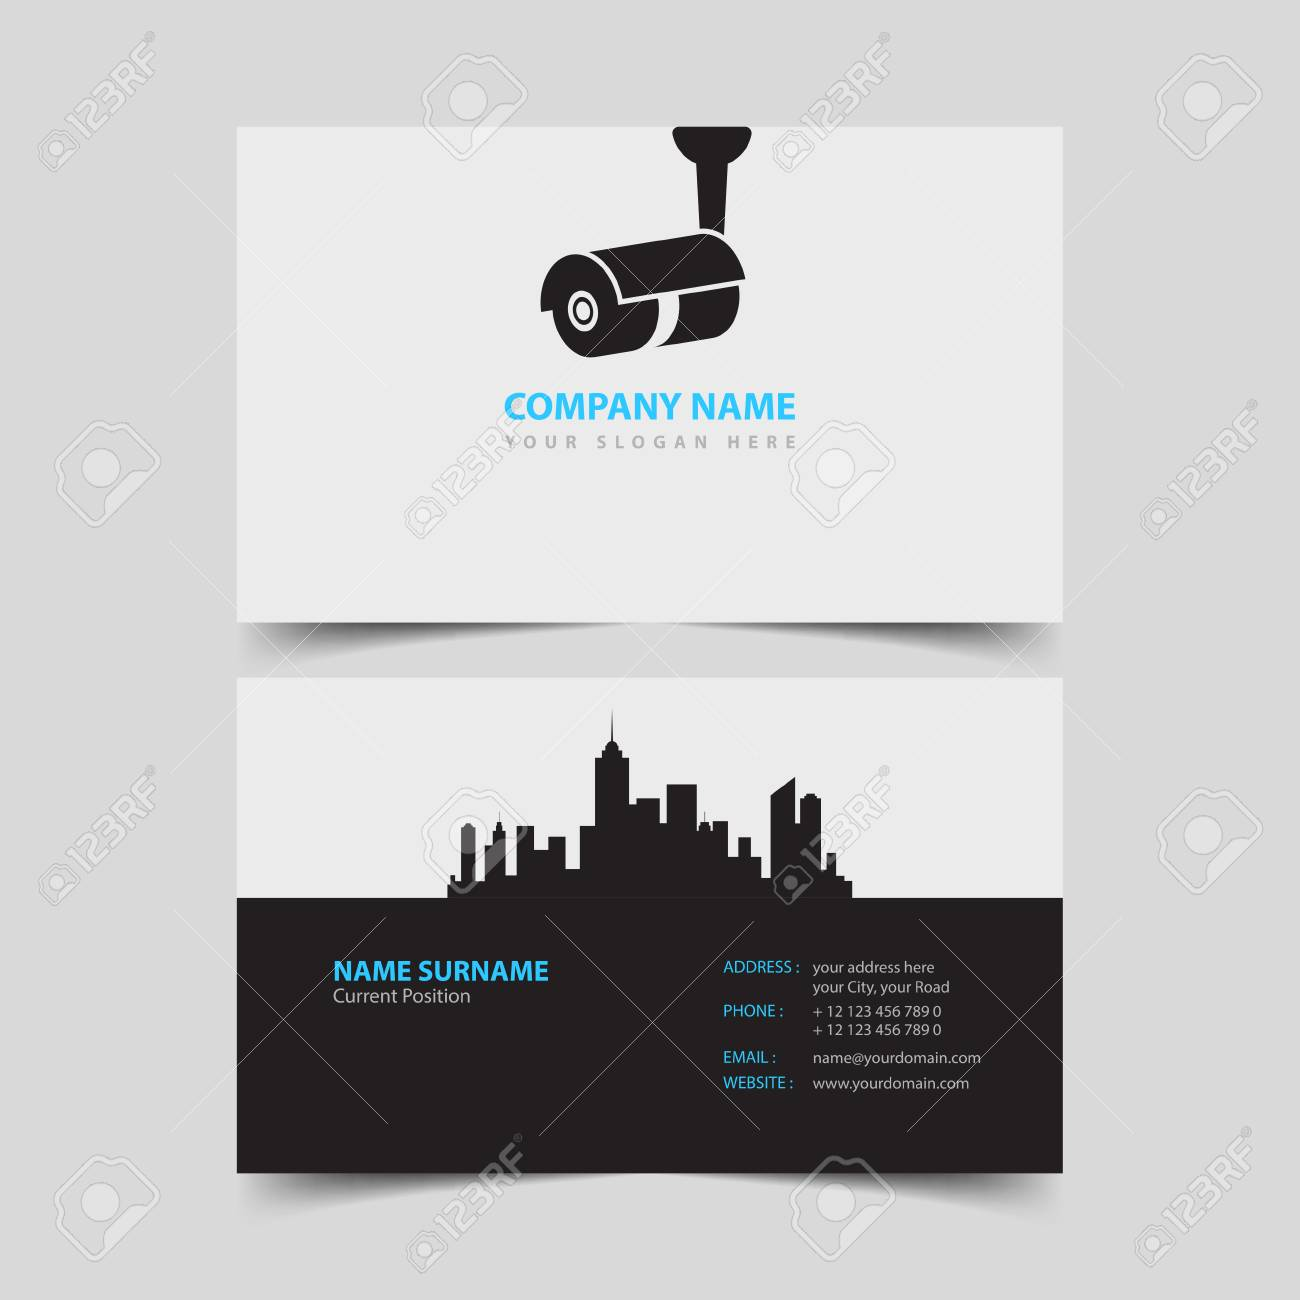 Security Video Surveillance Company Business Card Design Template ...